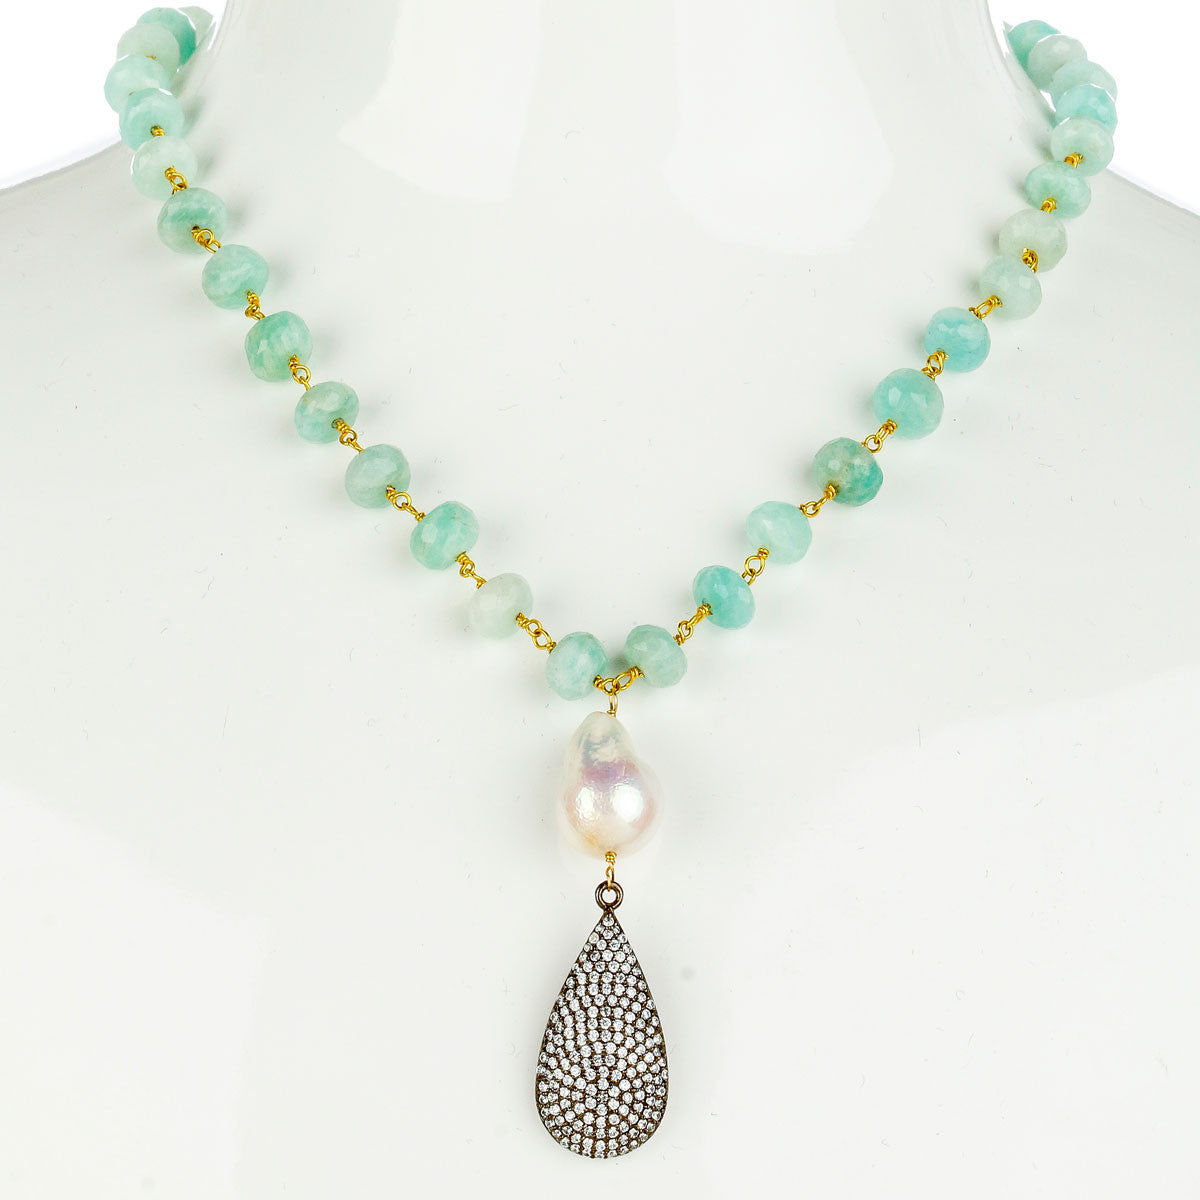 Yacht Club Necklace - The Firestone Collection - Fashion Jewelry & Accessories